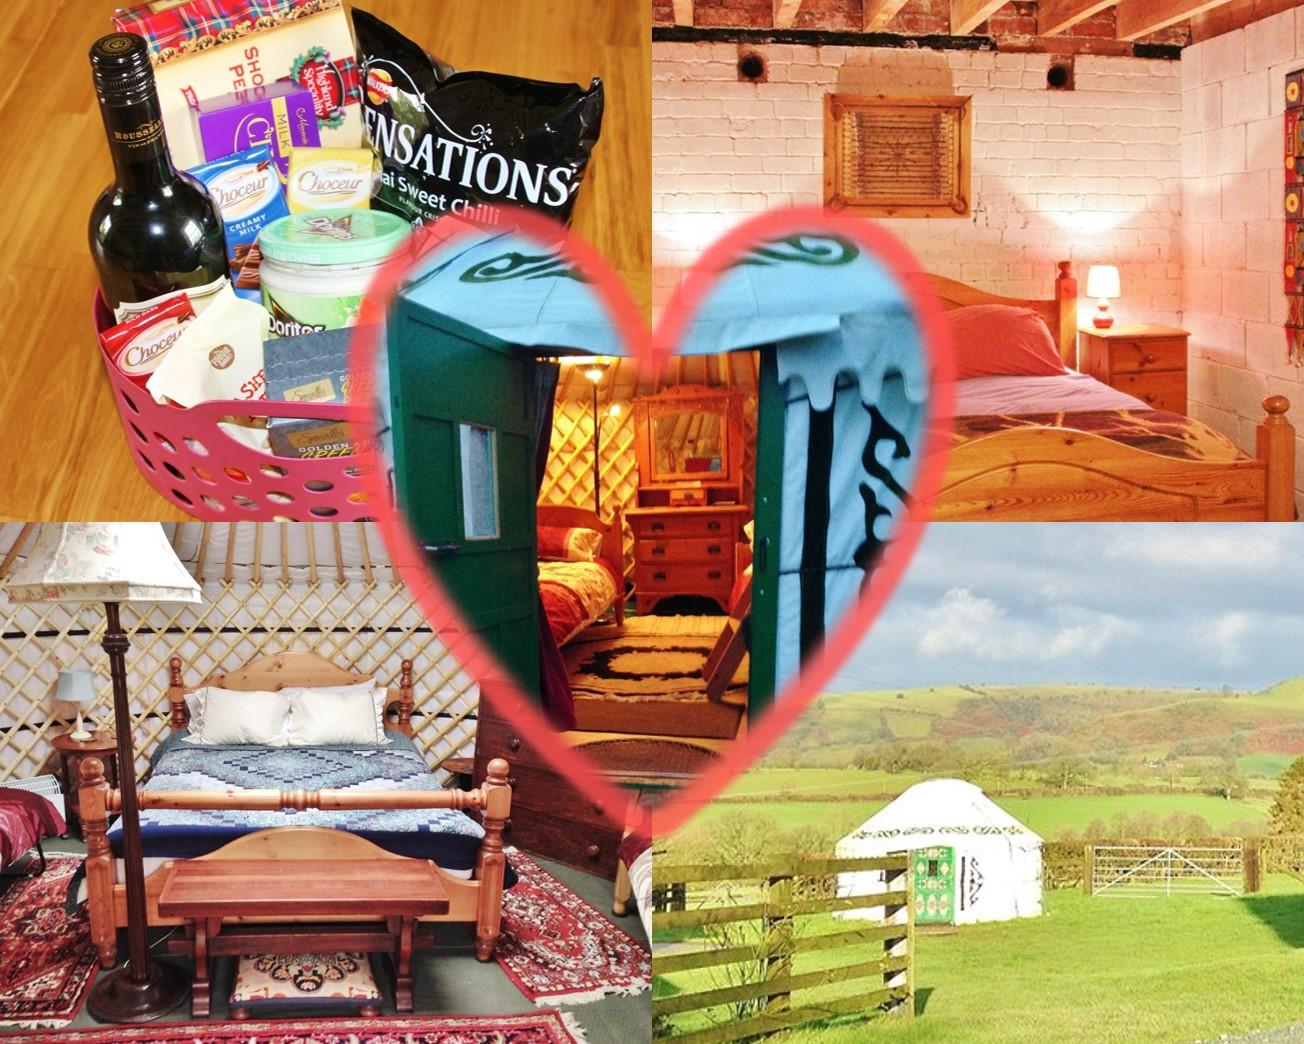 Valentine's Day glamping break in a yurt, stable or tent